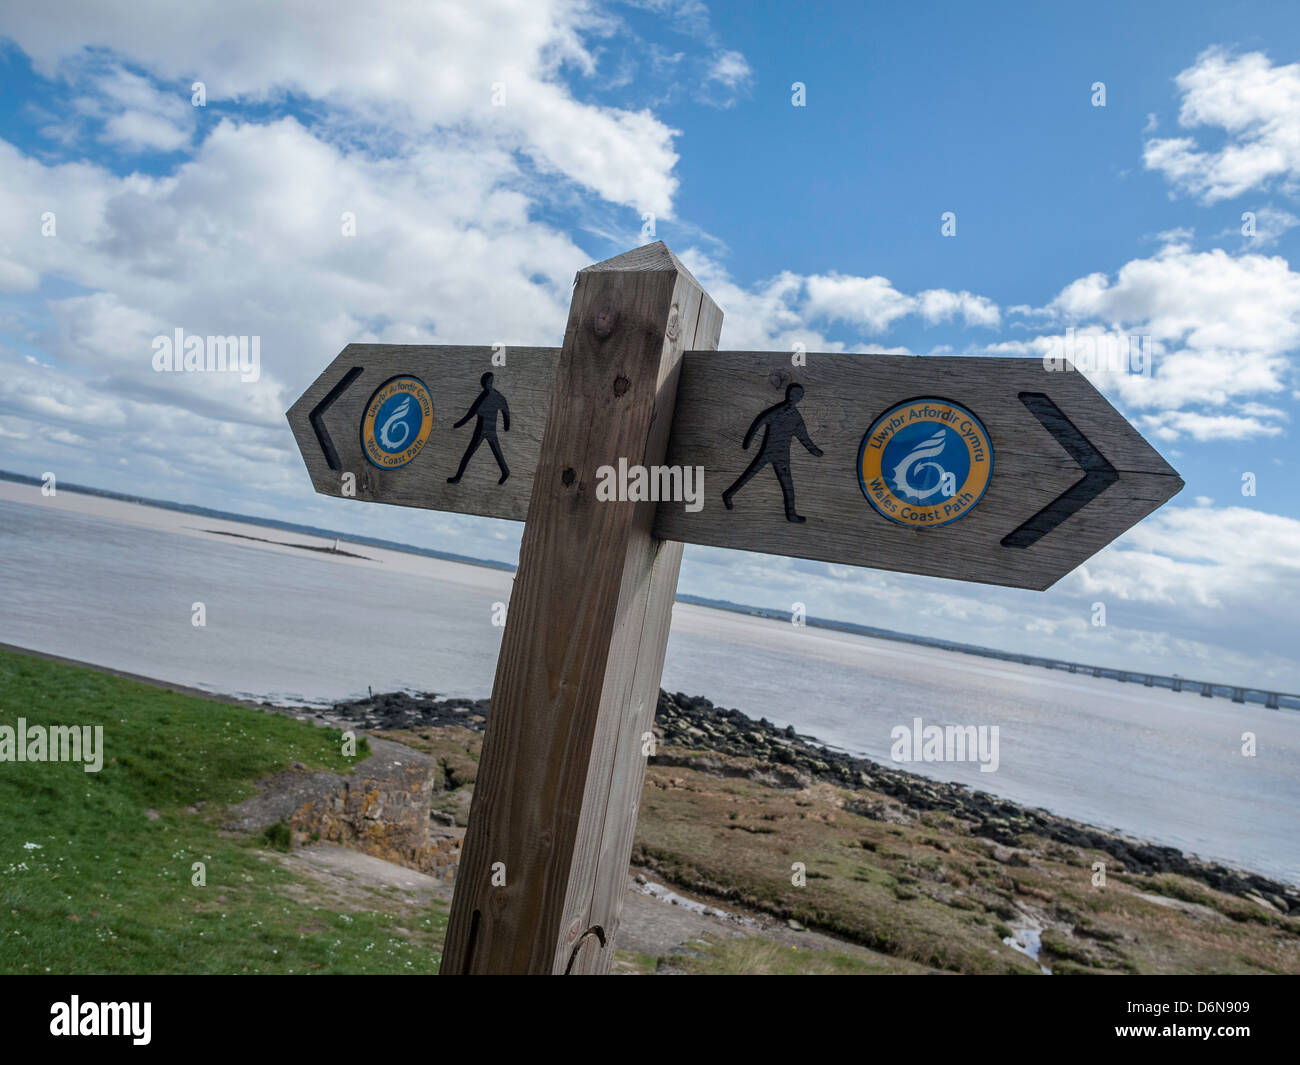 SIGNS ON WALES COAST PATH AT BLACK ROCK Monmouthshire Wales UK - Stock Image